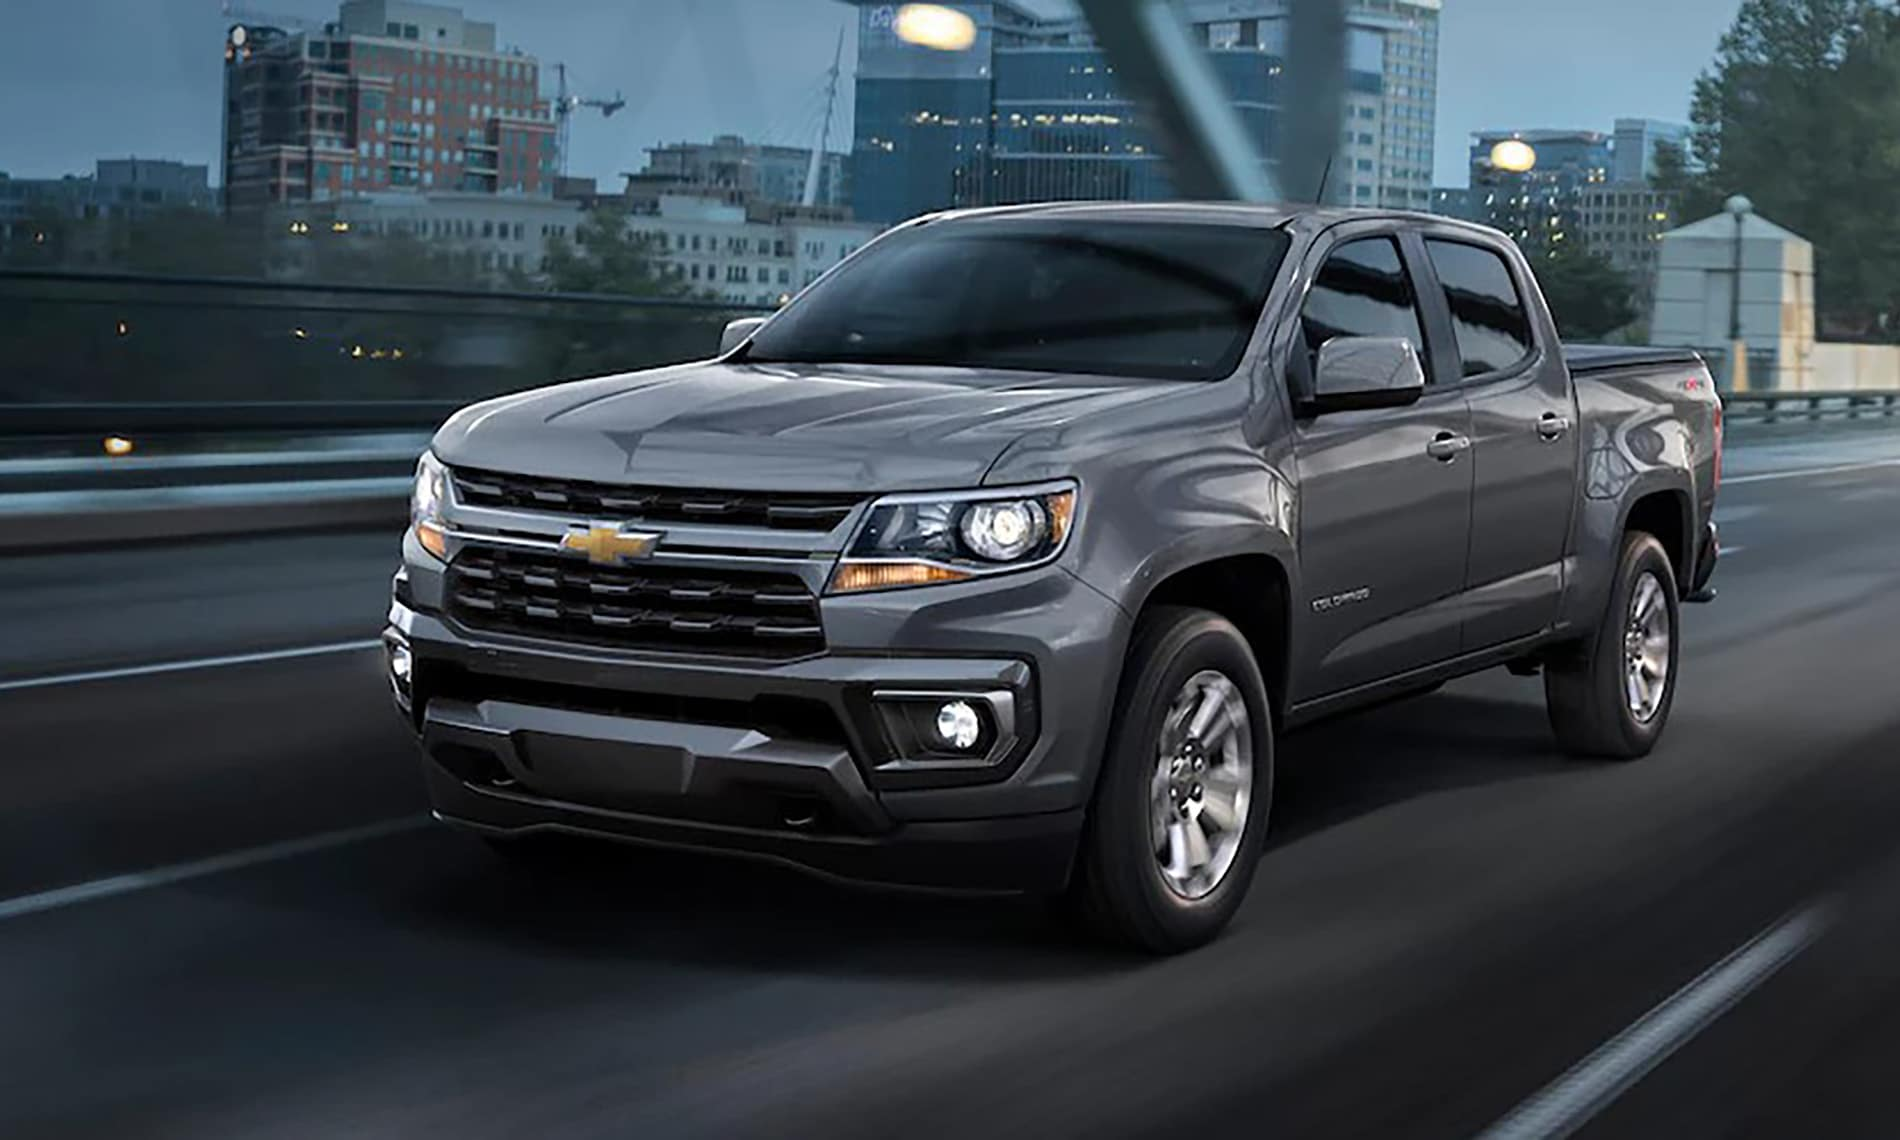 2021 Chevy Colorado in St. Louis